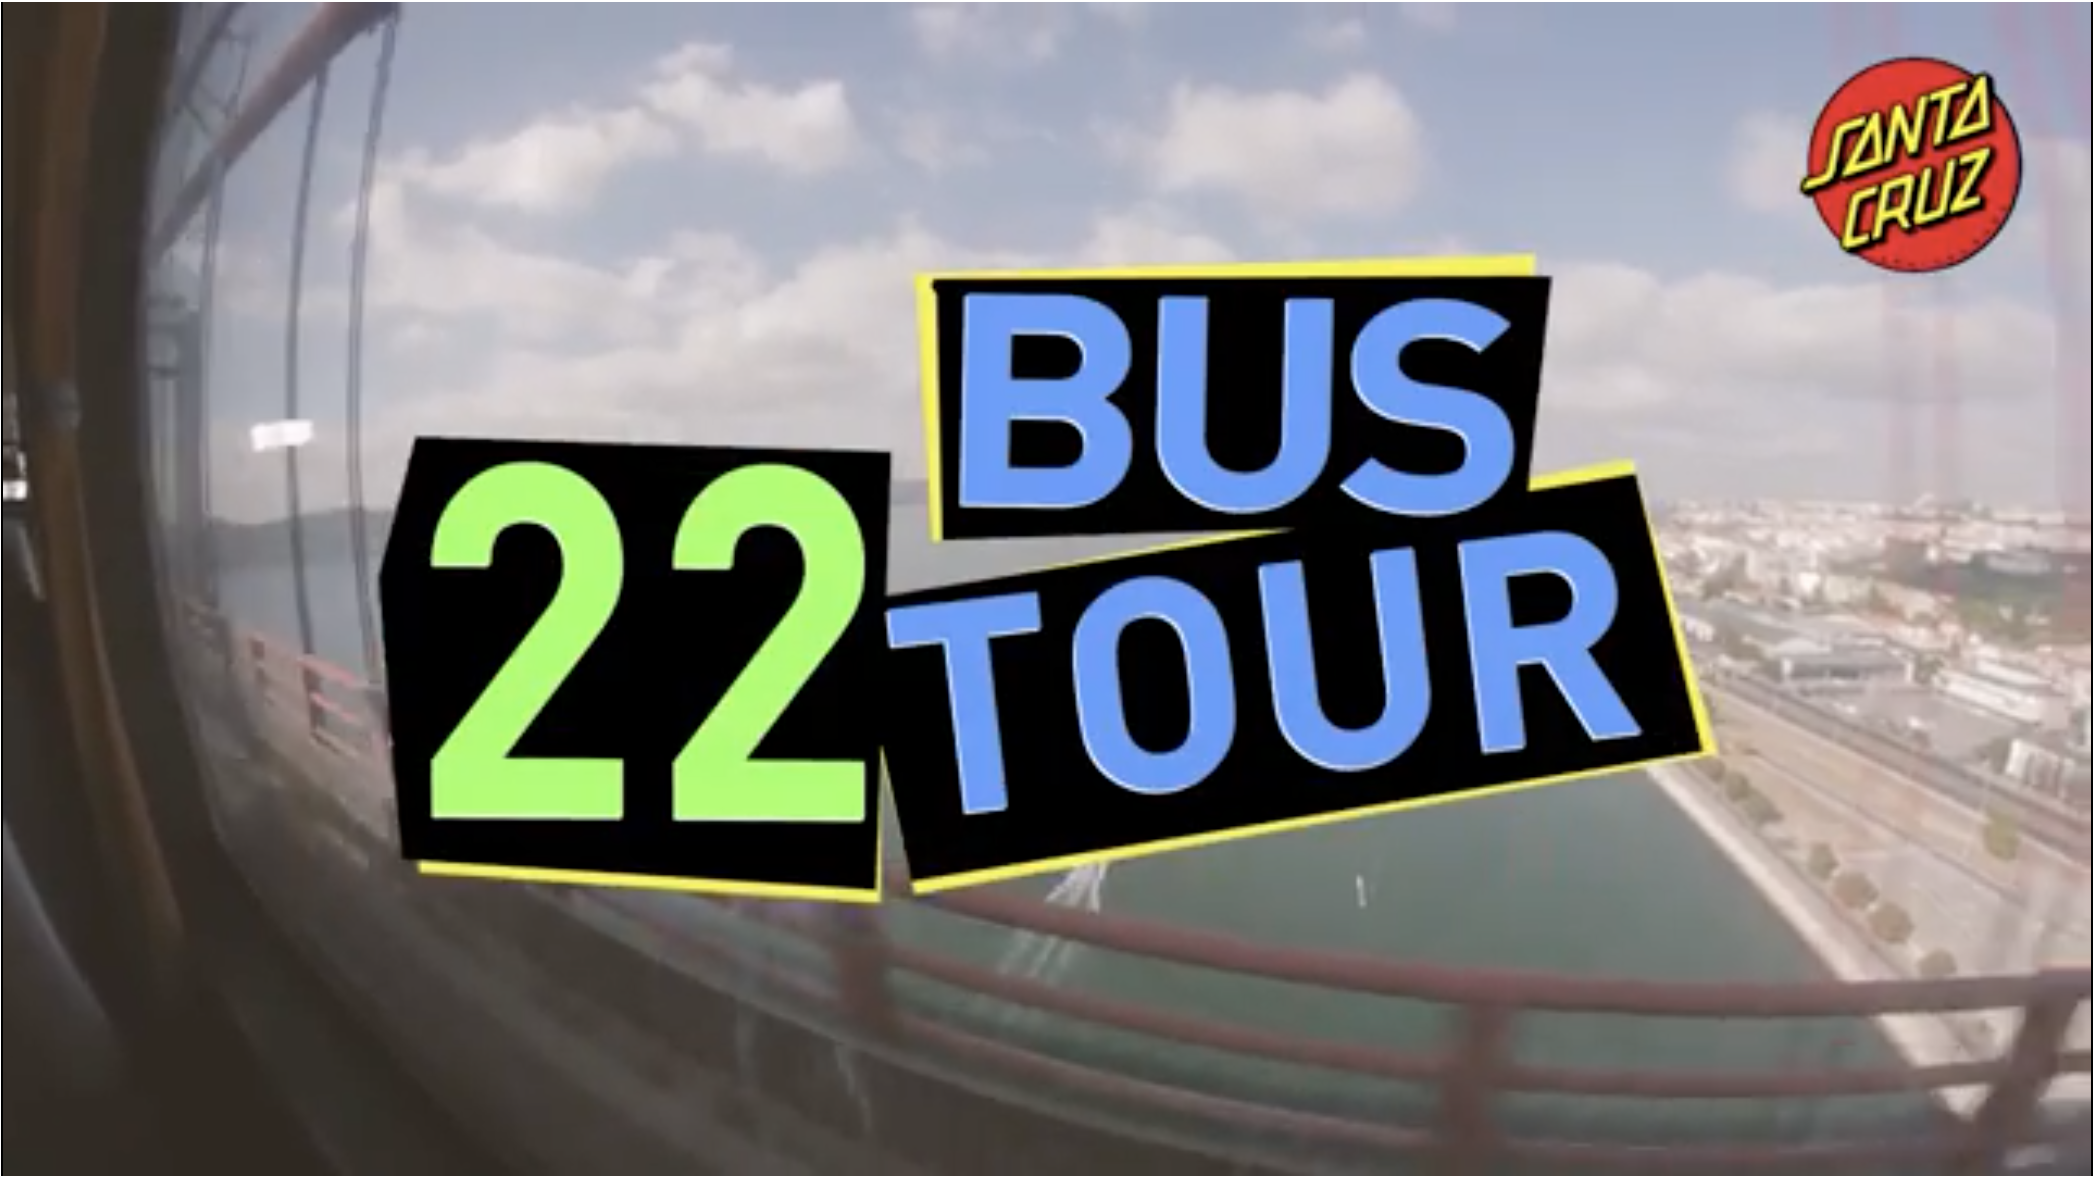 13823Bus 22 Tour Grândola 2016|Vídeo do evento||2:16